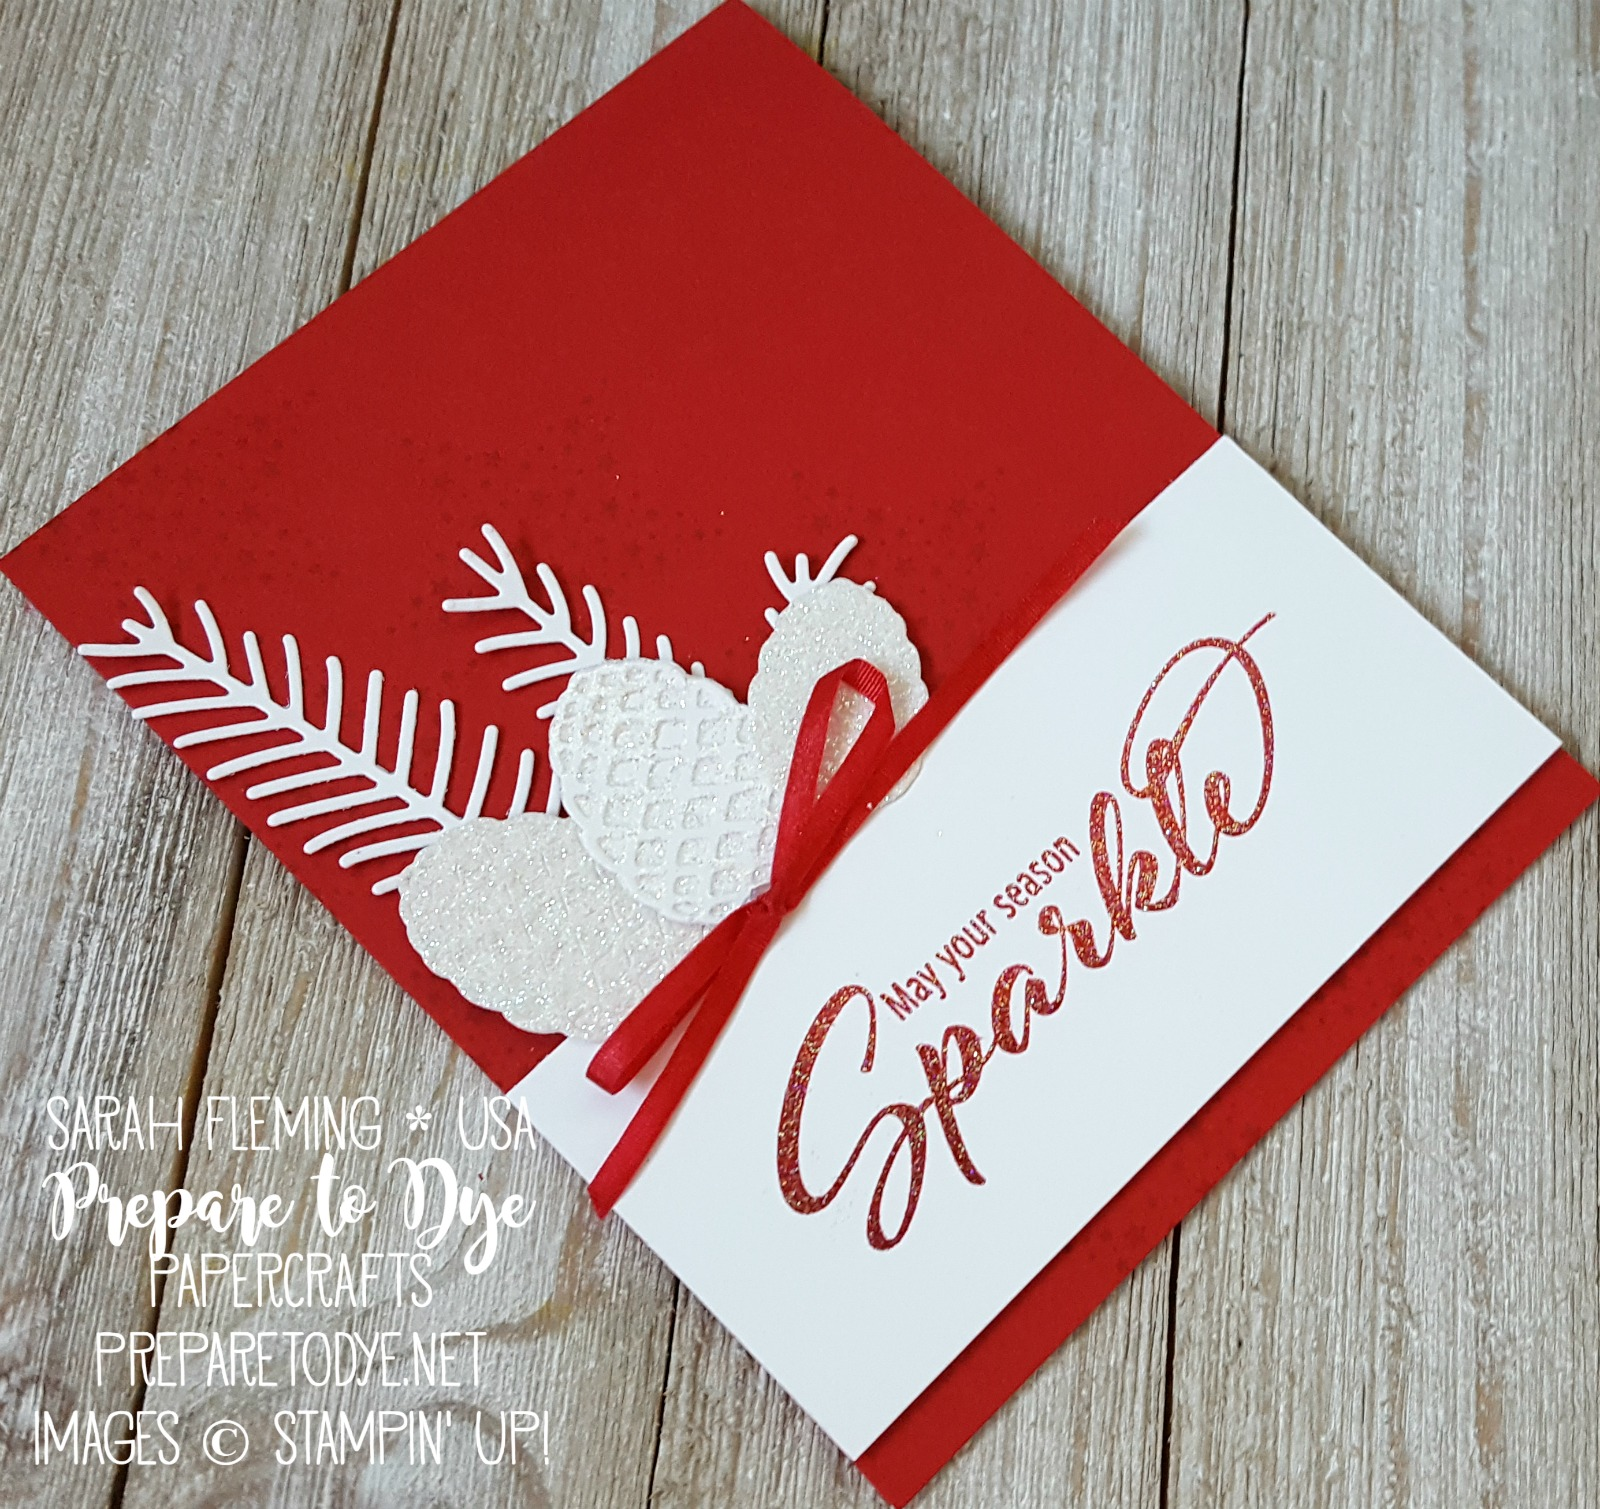 Stampin' Up! Add a Little Glitz with Pretty Pines thinlits - heat embossing with glitter on a handmade Christmas card - Sarah Fleming - Prepare to Dye Papercrafts